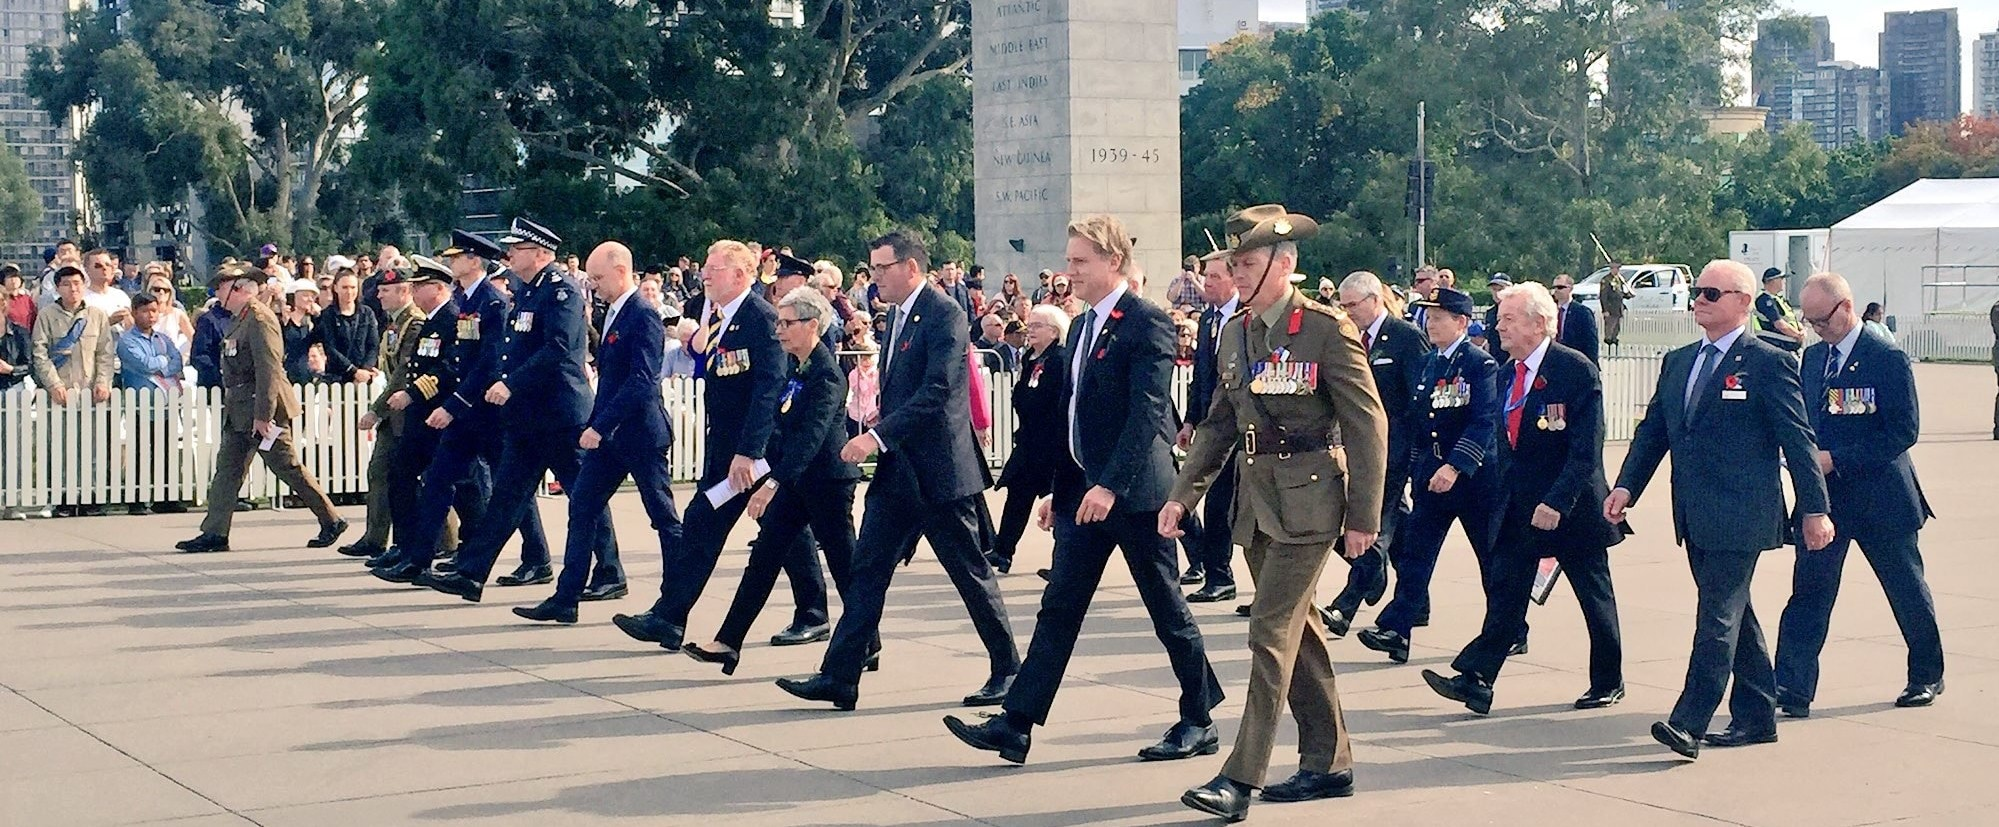 The Governor taking part in the Anzac Day March.